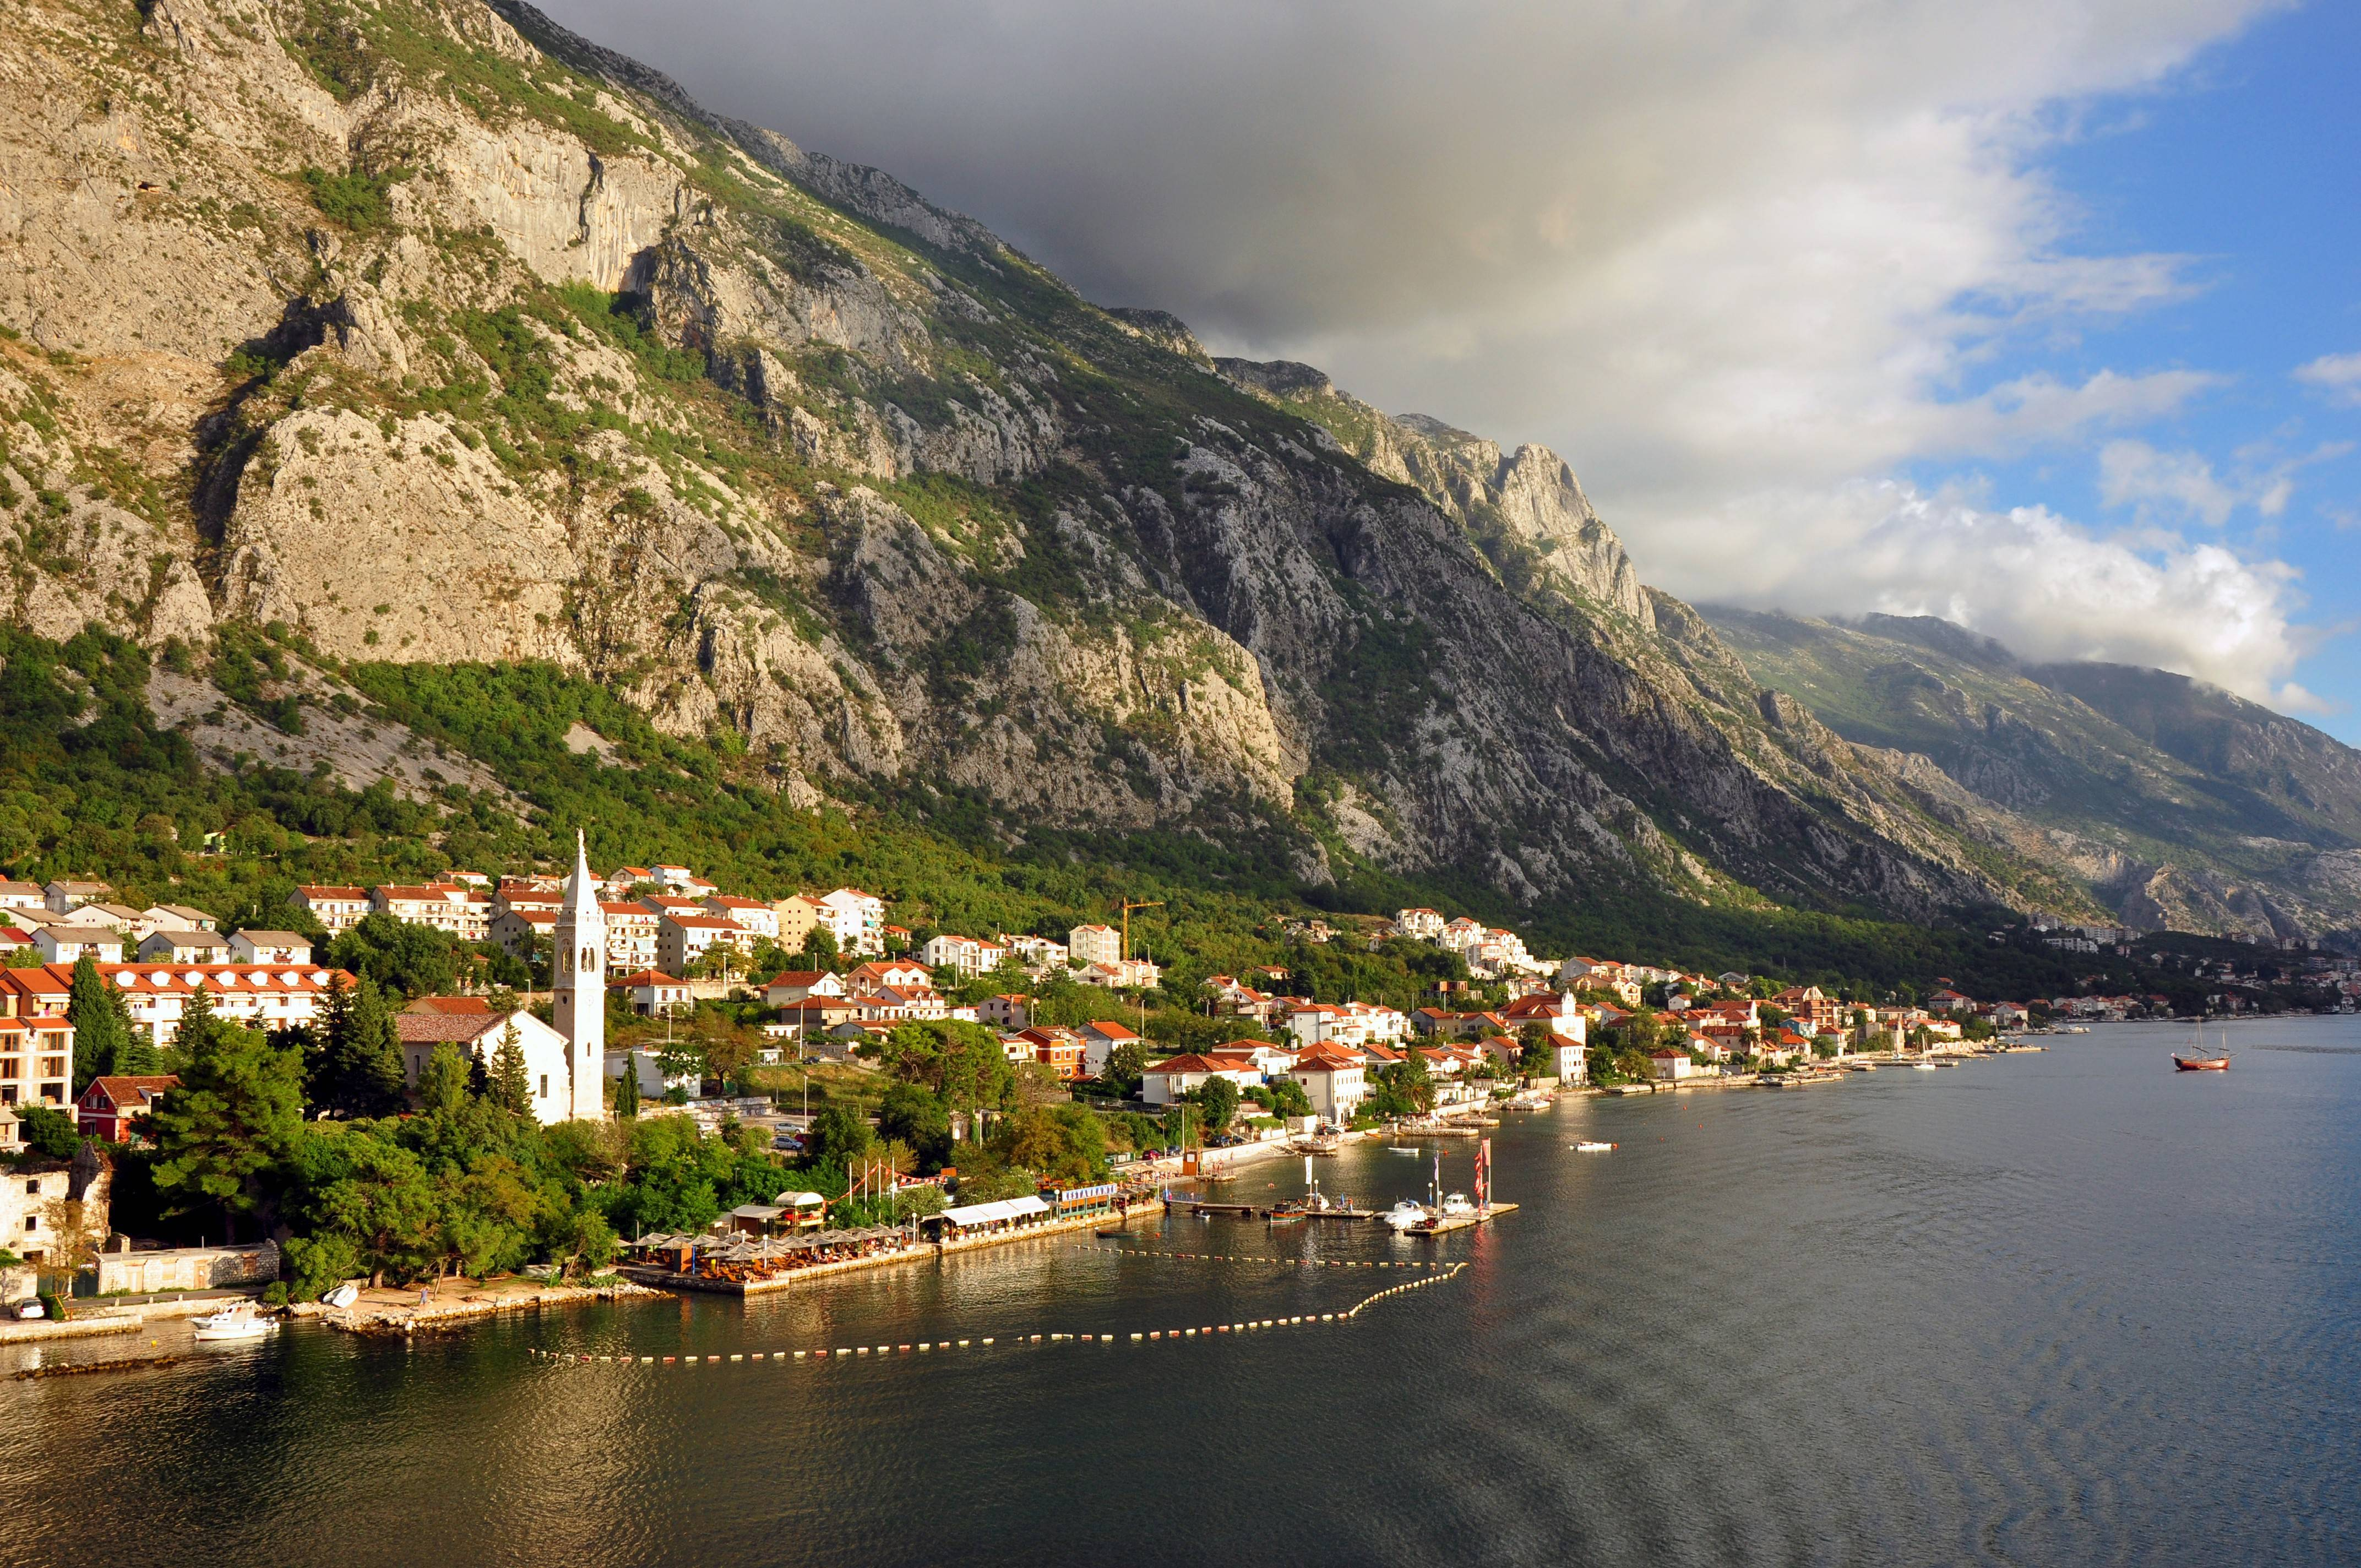 The Bay of Kotor in Montenegro is one of the longest inlets on the Dalmatian Coast. Villages of stone buildings with red roofs dot the shoreline.